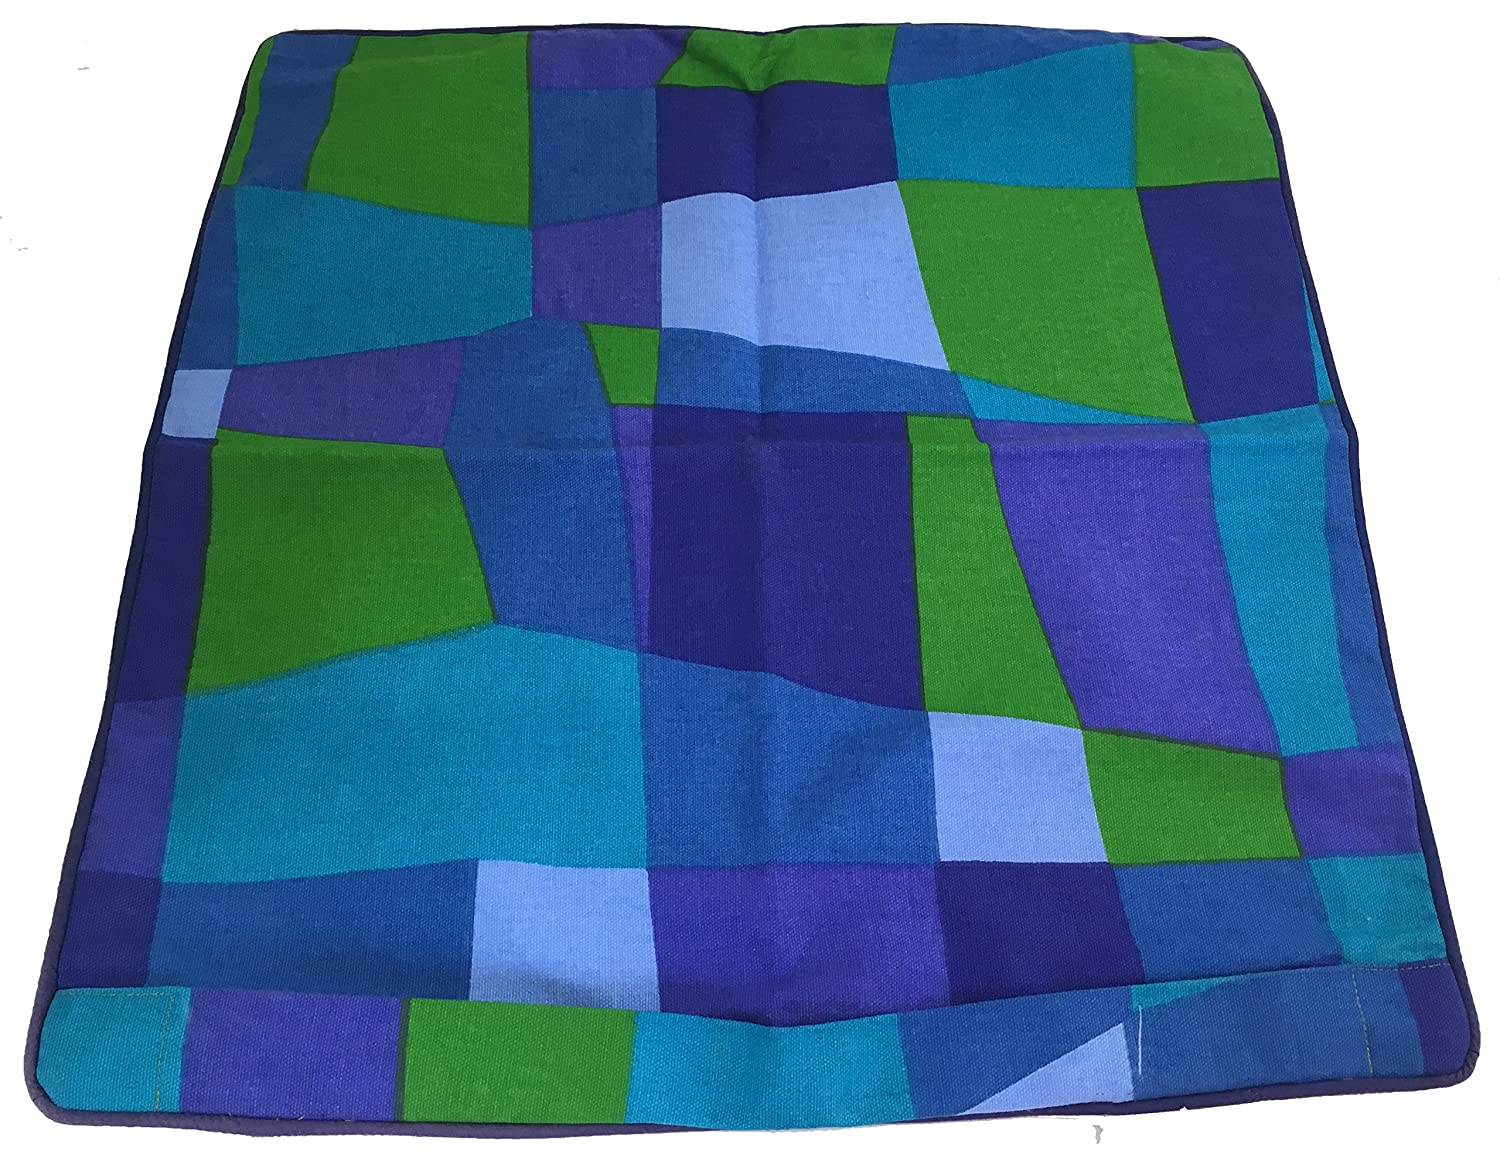 Sia Home Fashions Decor Decorative Pillow Cover 20 by 20-Inch Channel Distribution 651064 Green Blue Mosaic